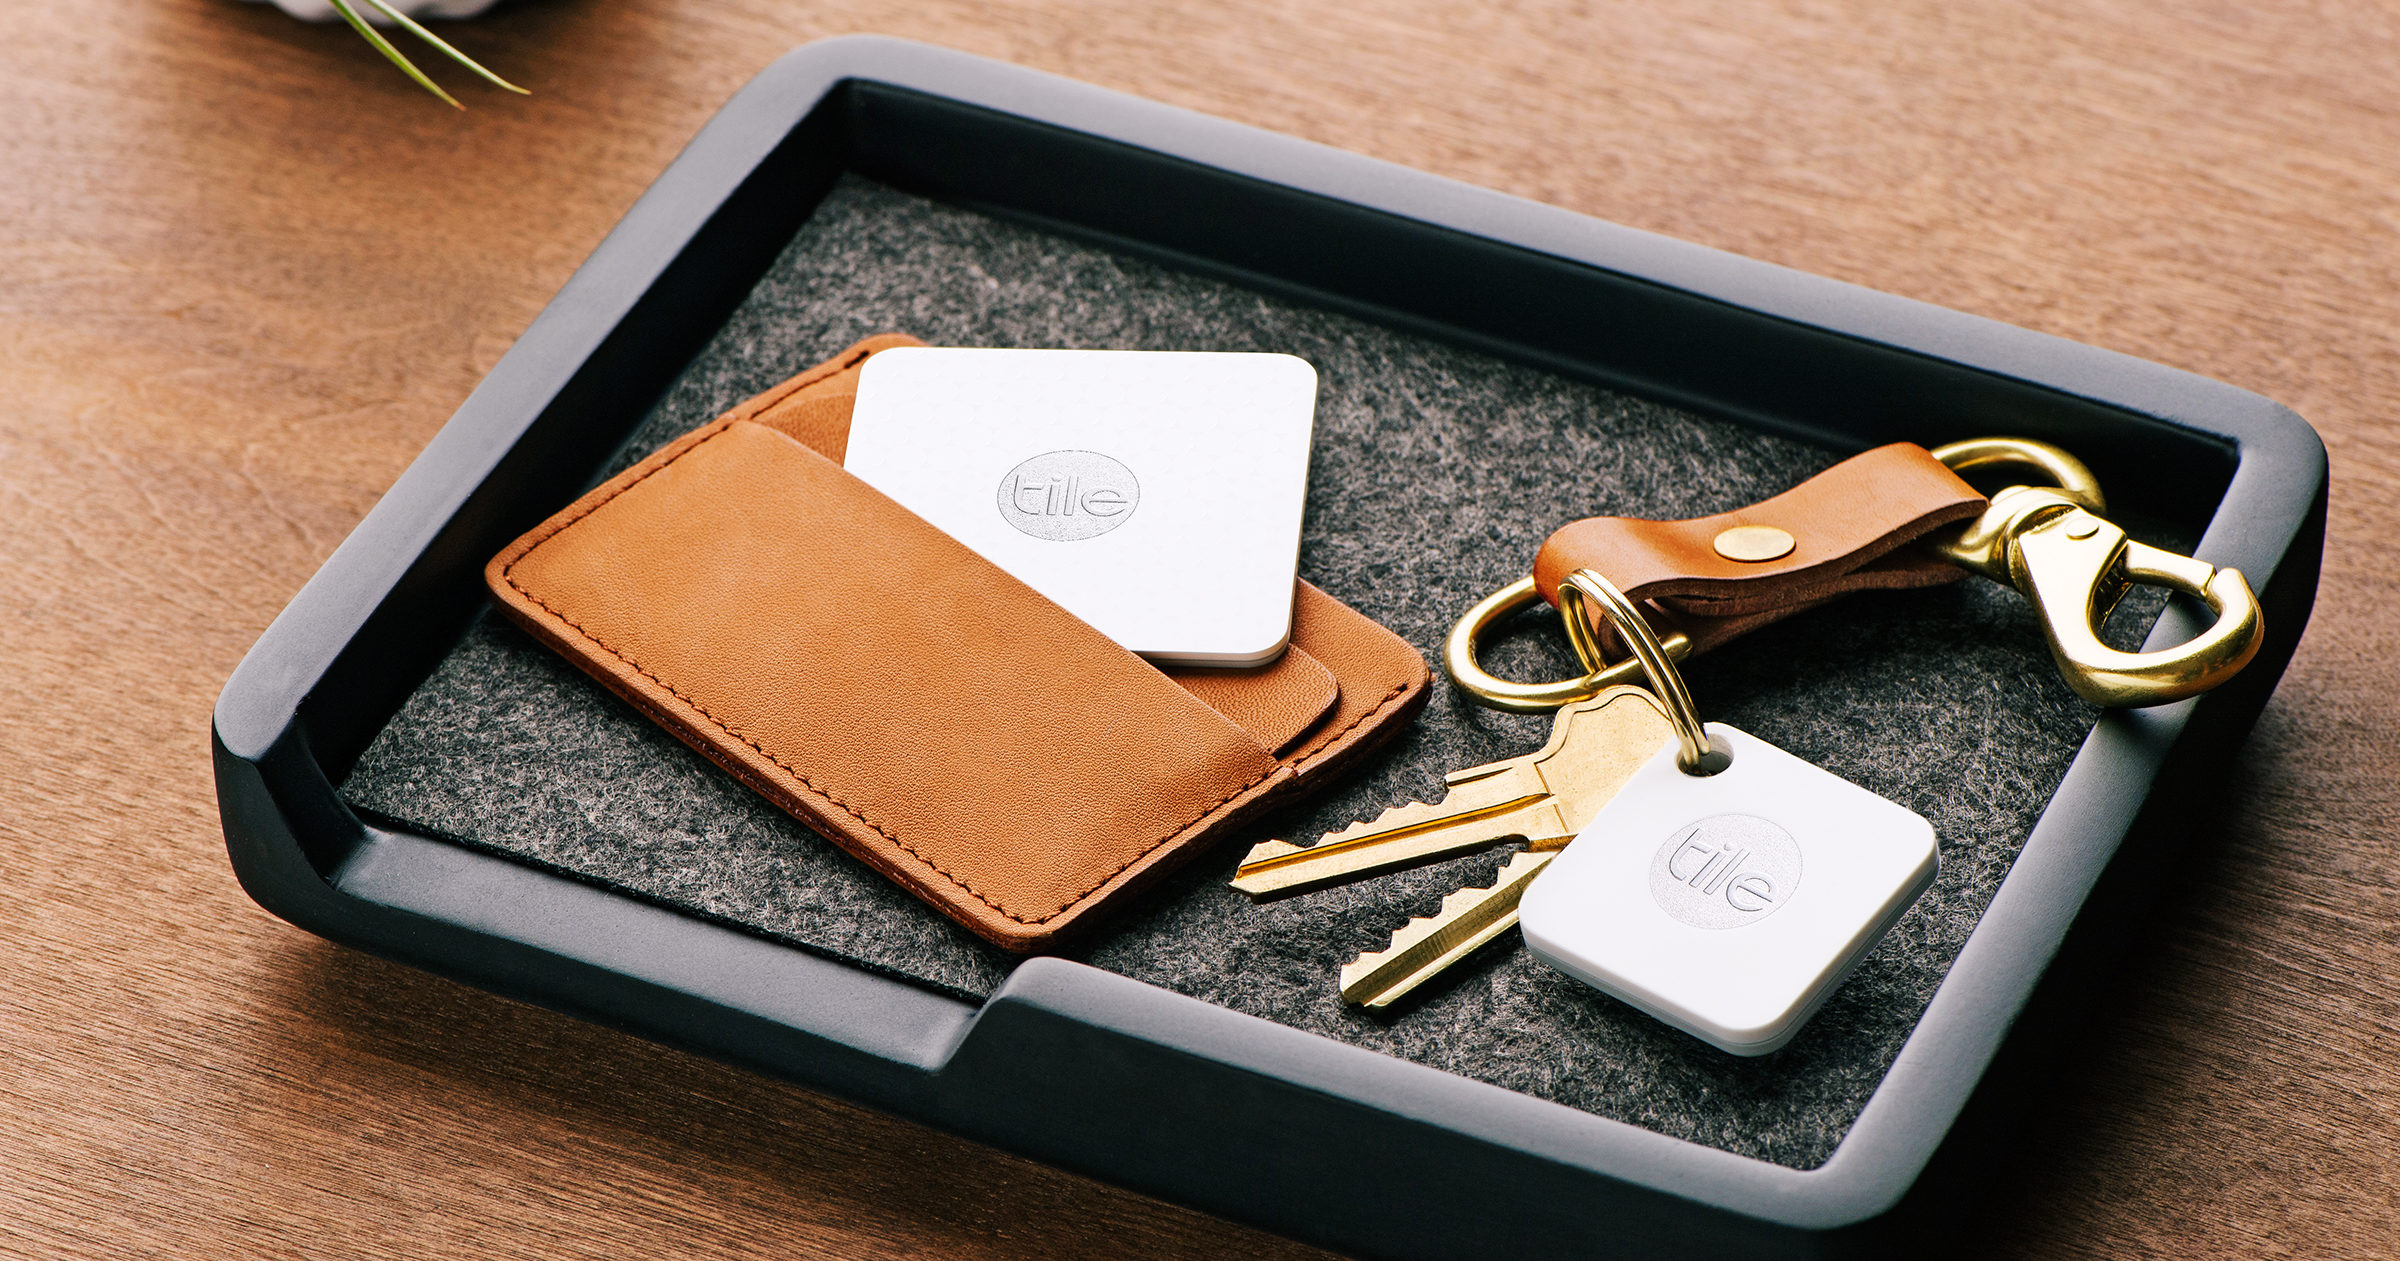 Review: Tile Mate and Slim | WIRED